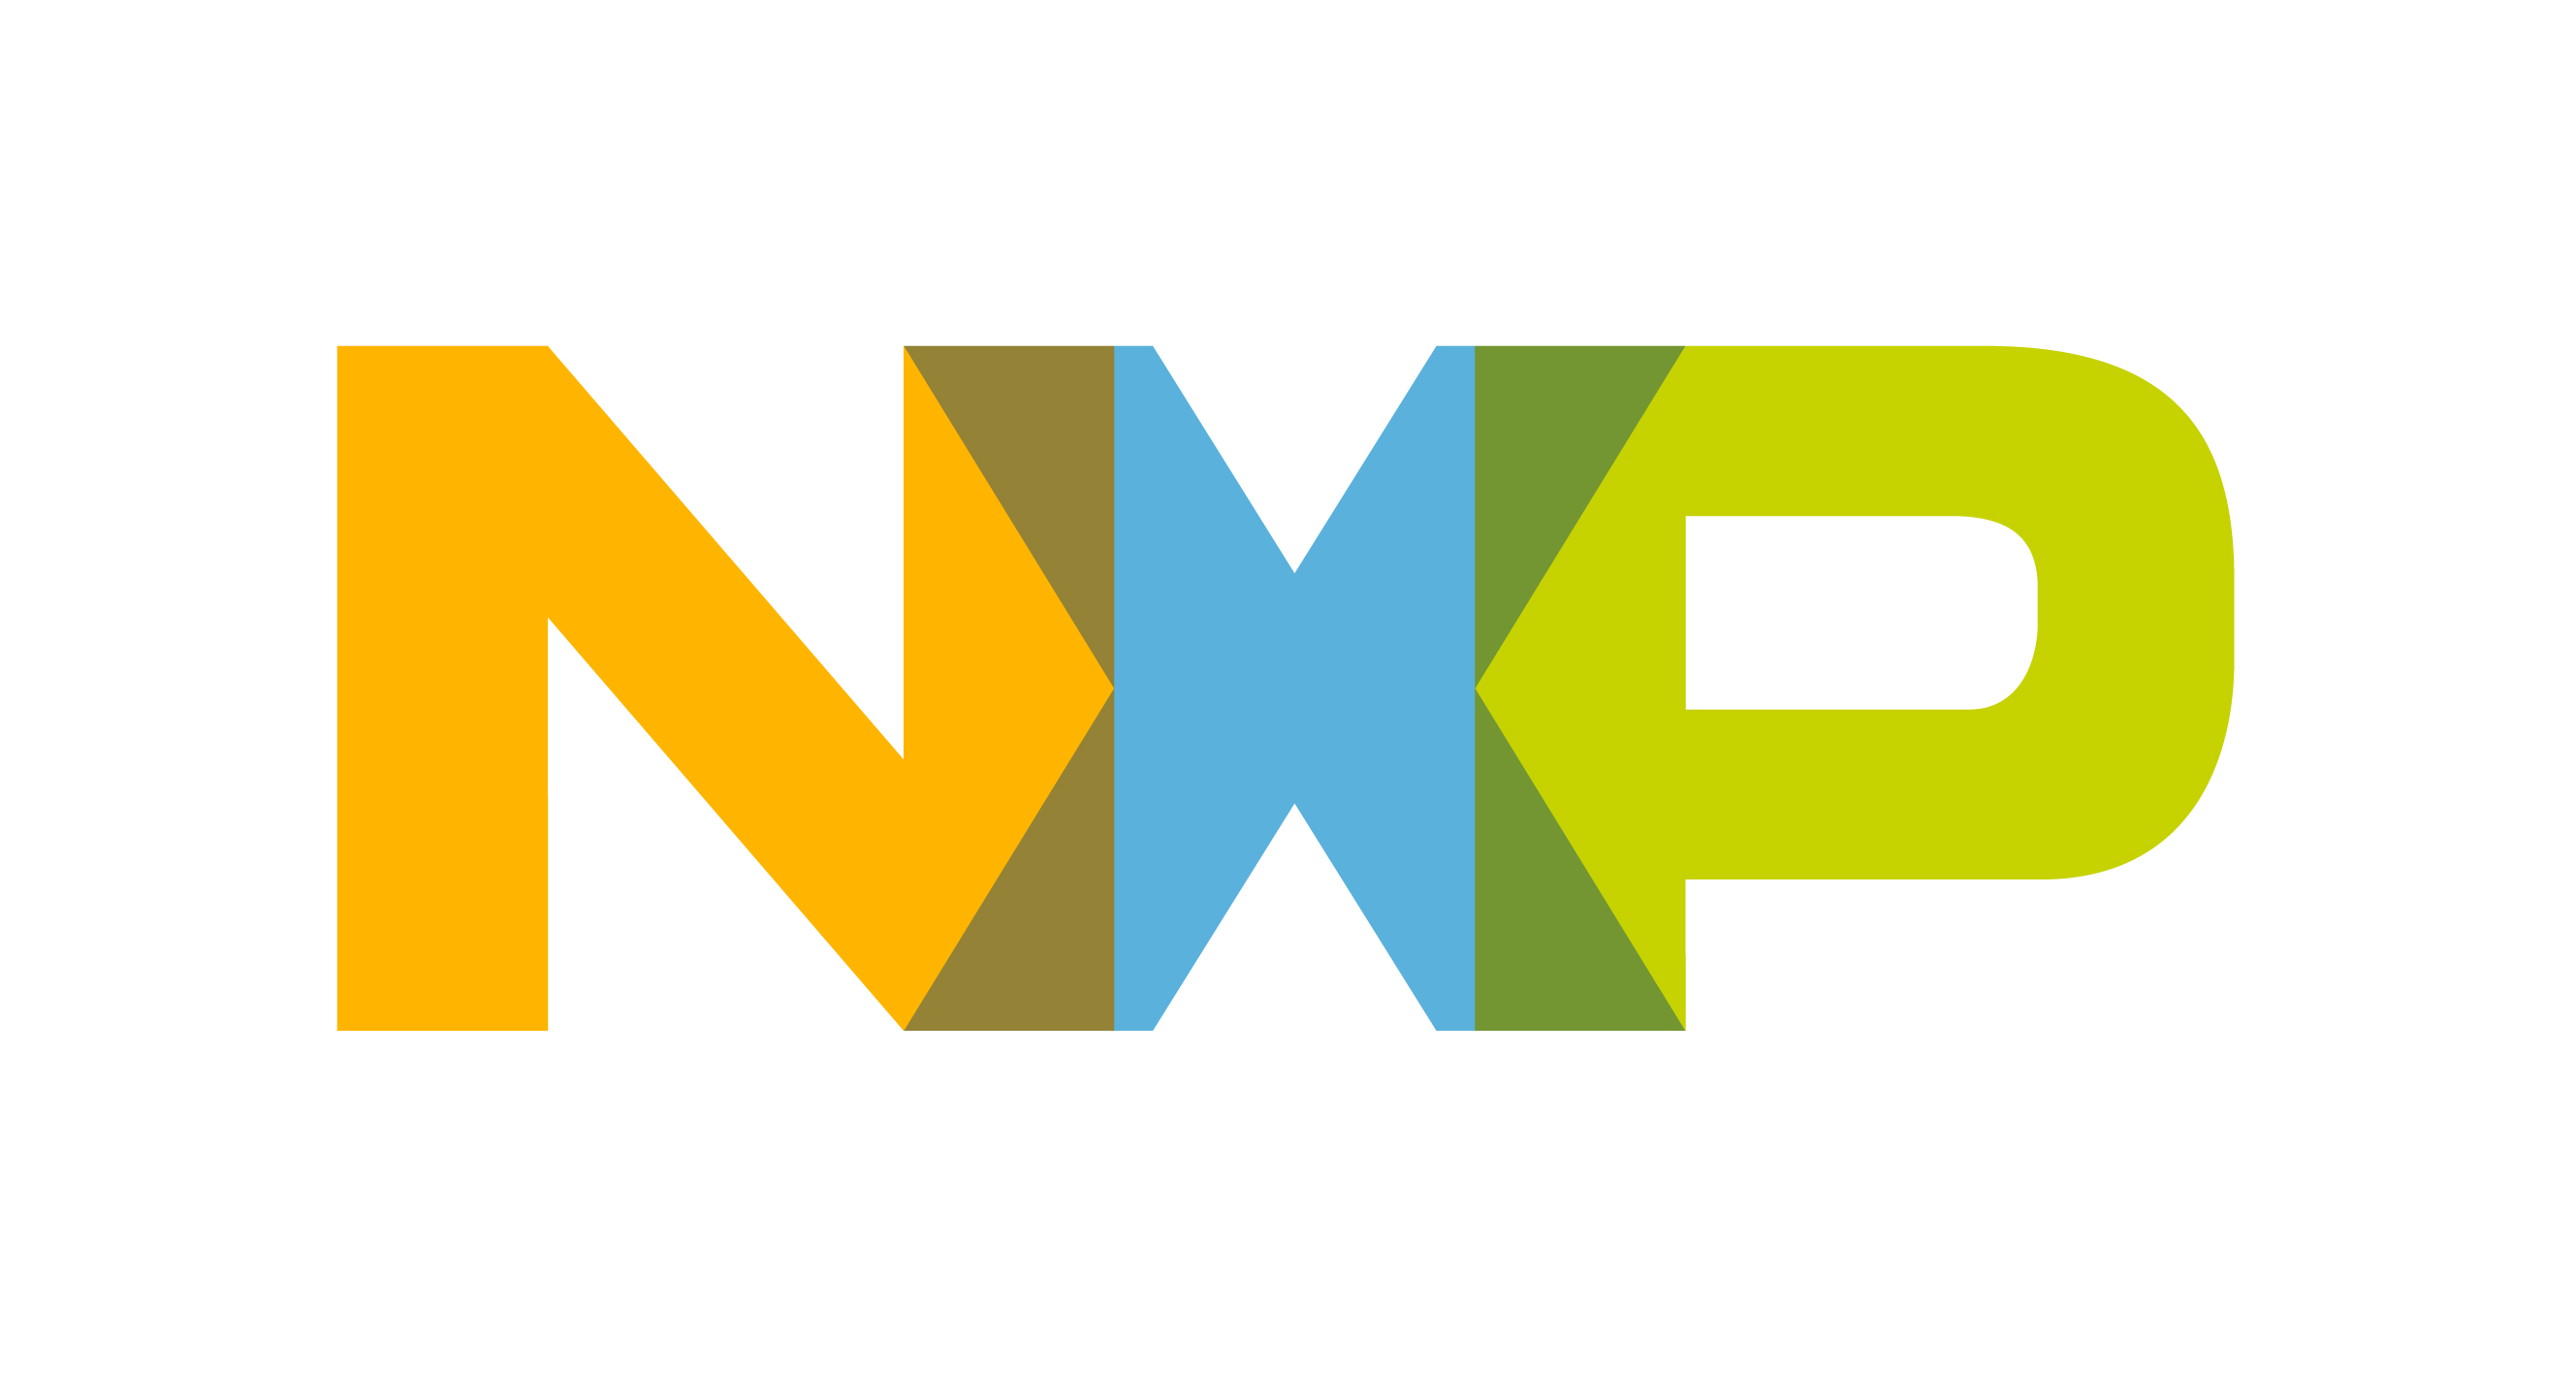 NXP FTF China: NXP Celebrates 10 Years; Showcases Solutions for a Smarter World and Highlights Key Partnerships